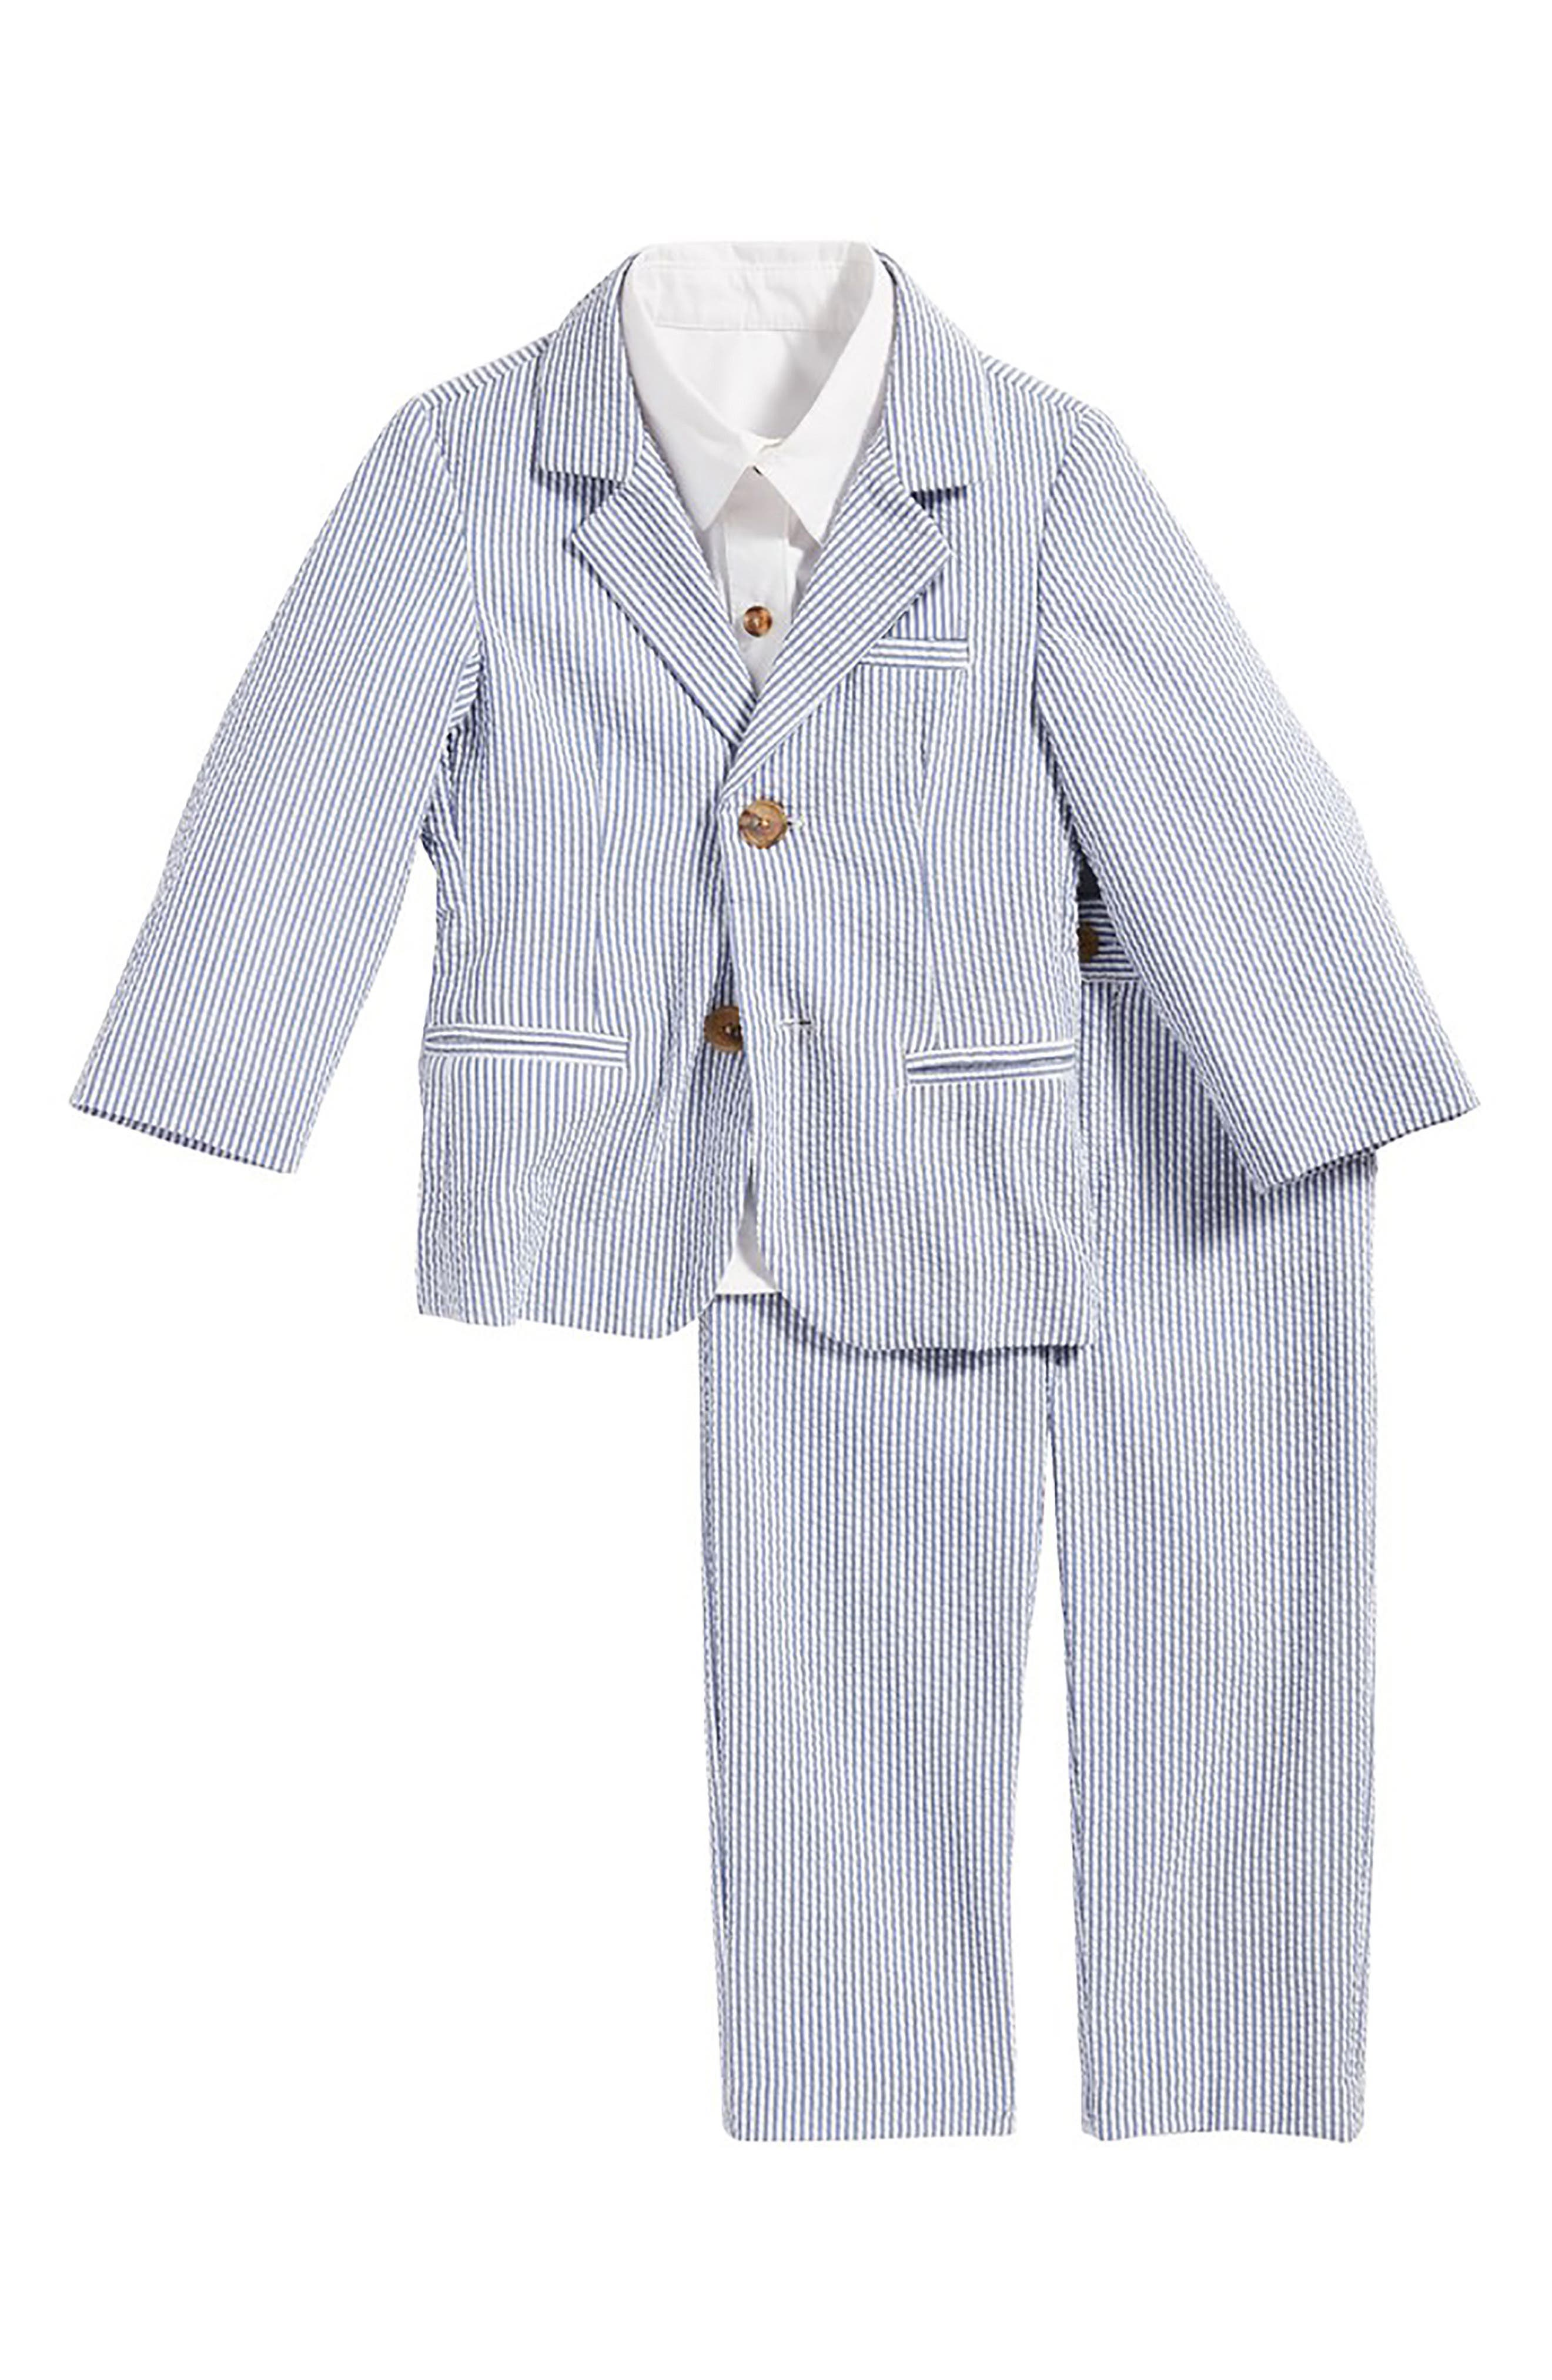 Alternate Image 1 Selected - Little Brother by Pippa & Julie Seersucker Suit Set (Baby Boys)